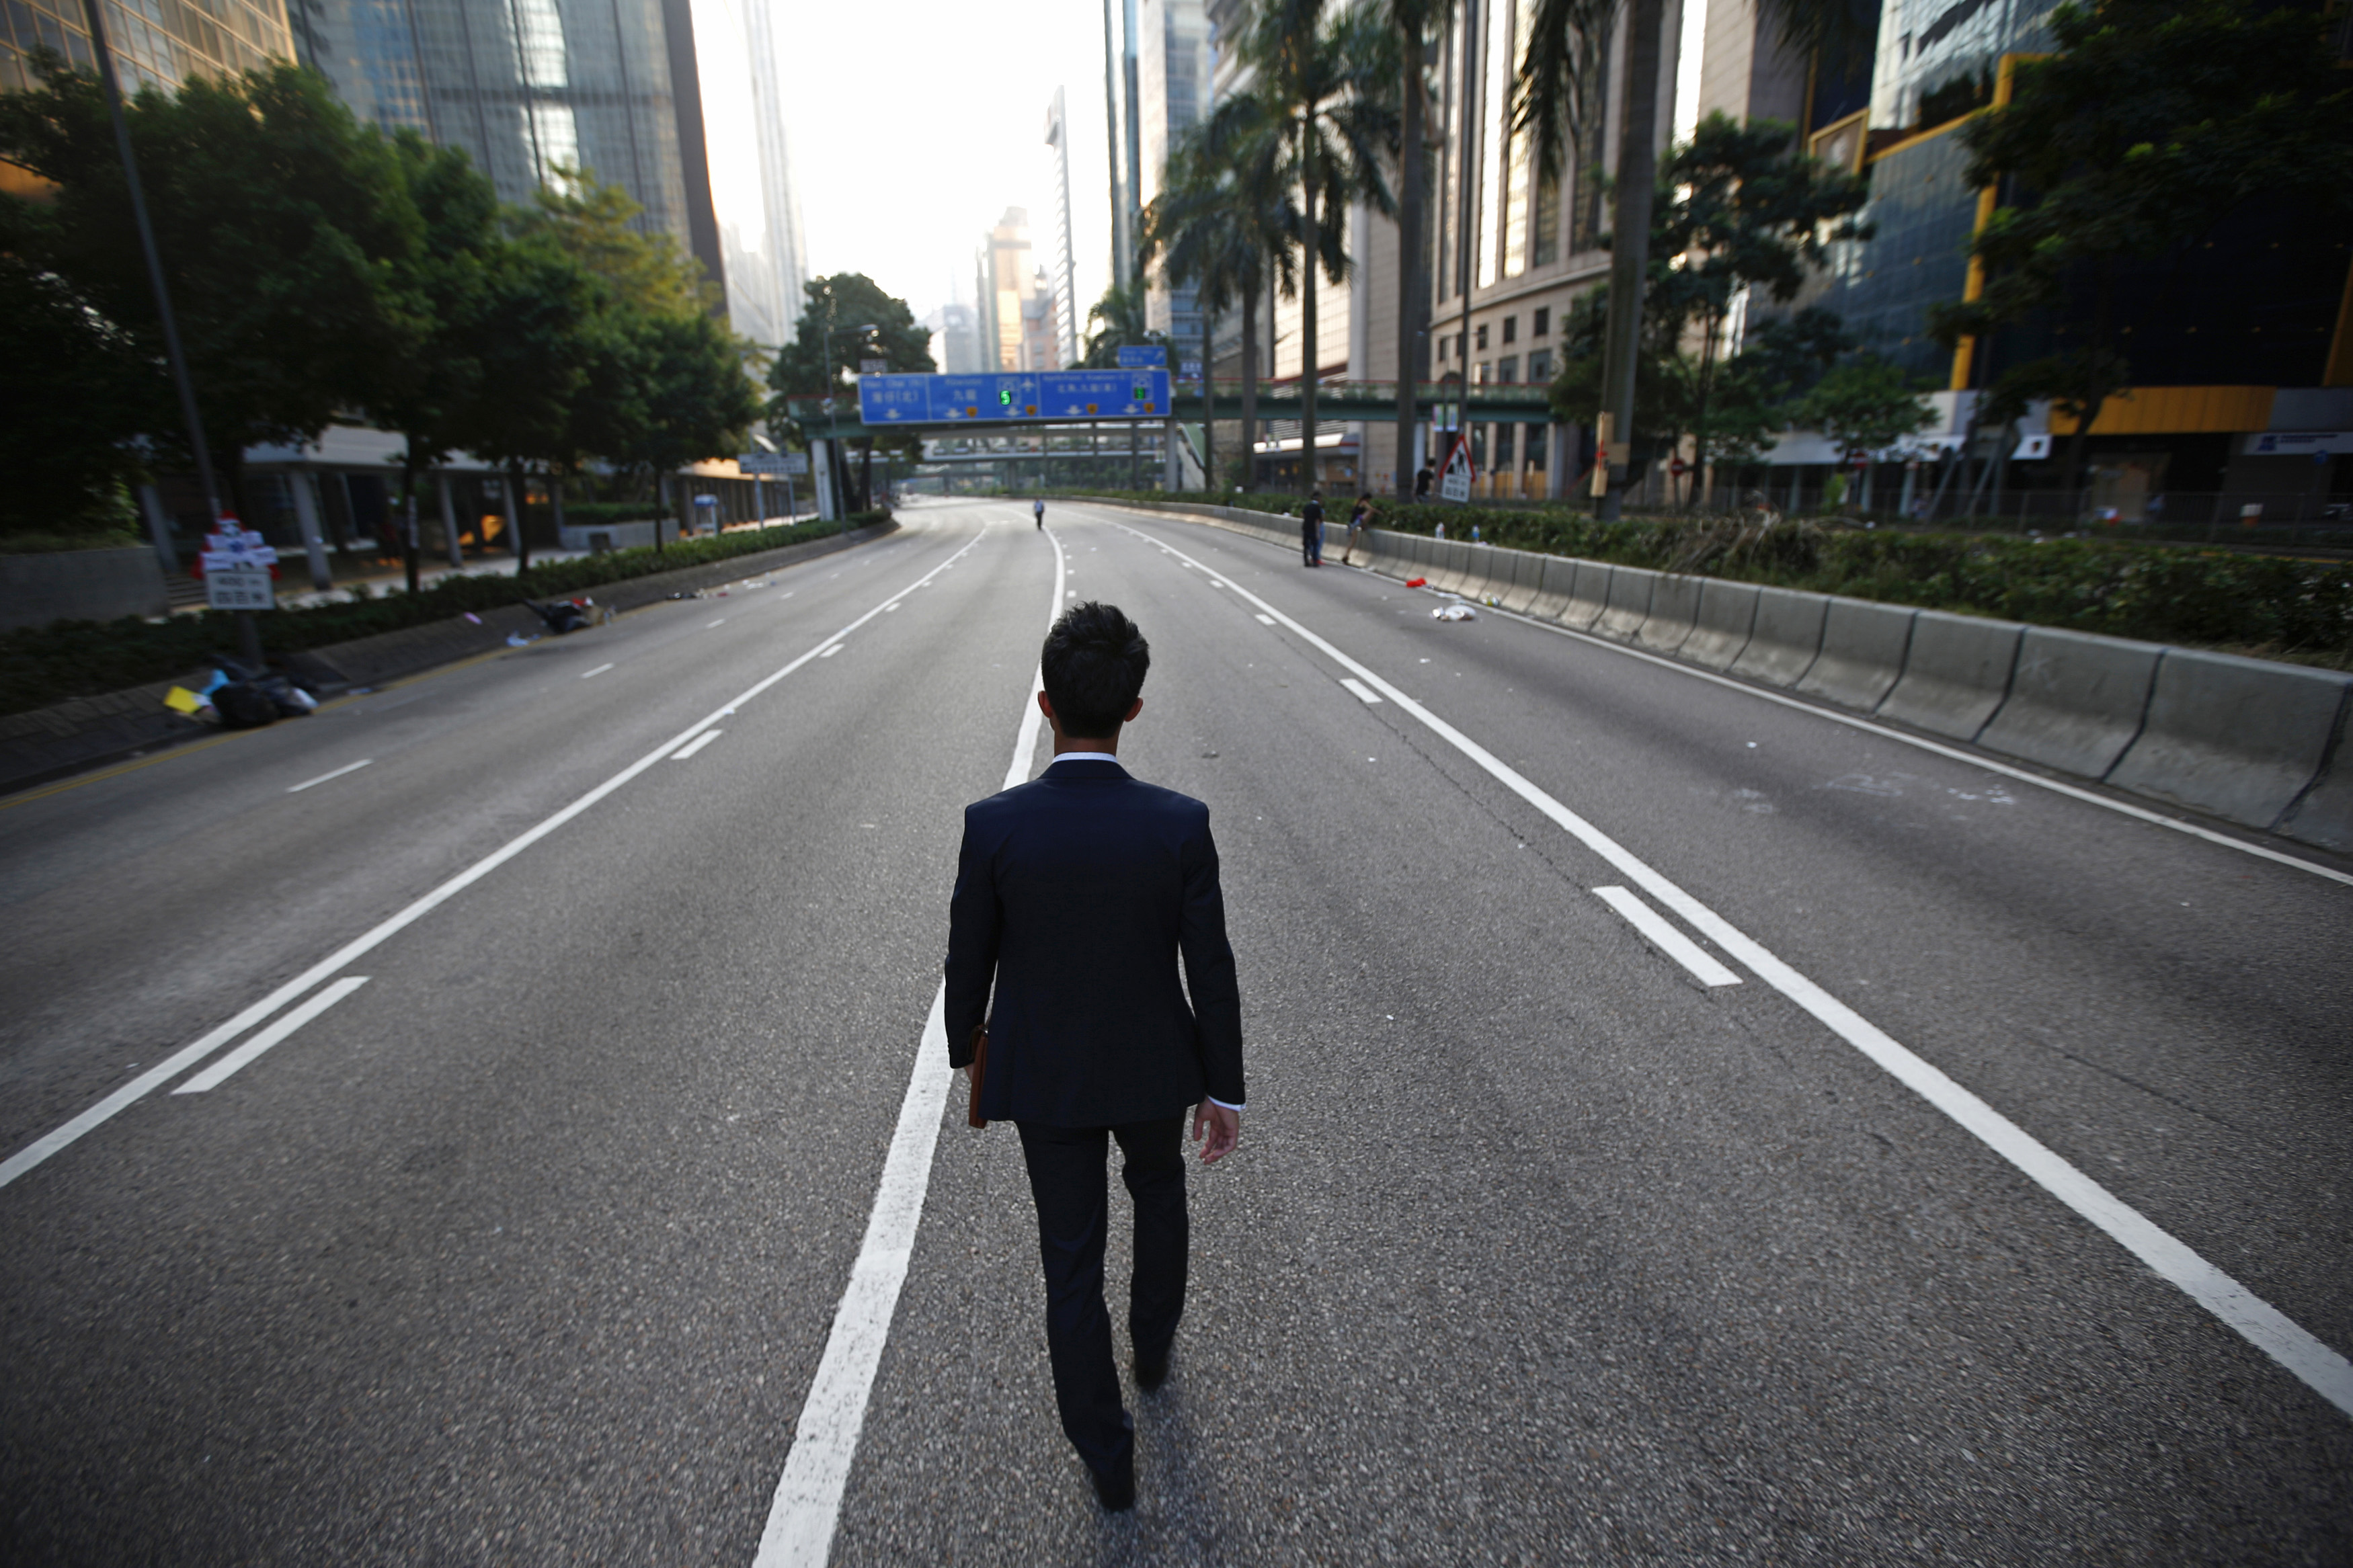 A man walks along an empty street near the central financial district in Hong Kong September 30, 2014. Tens of thousands of pro-democracy protesters extended a blockade of Hong Kong streets on Tuesday, stockpiling supplies and erecting makeshift barricades ahead of what some fear may be a push by police to clear the roads before Chinese National Day.   REUTERS/Carlos Barria (CHINA - Tags: POLITICS CIVIL UNREST) - RTR4891T